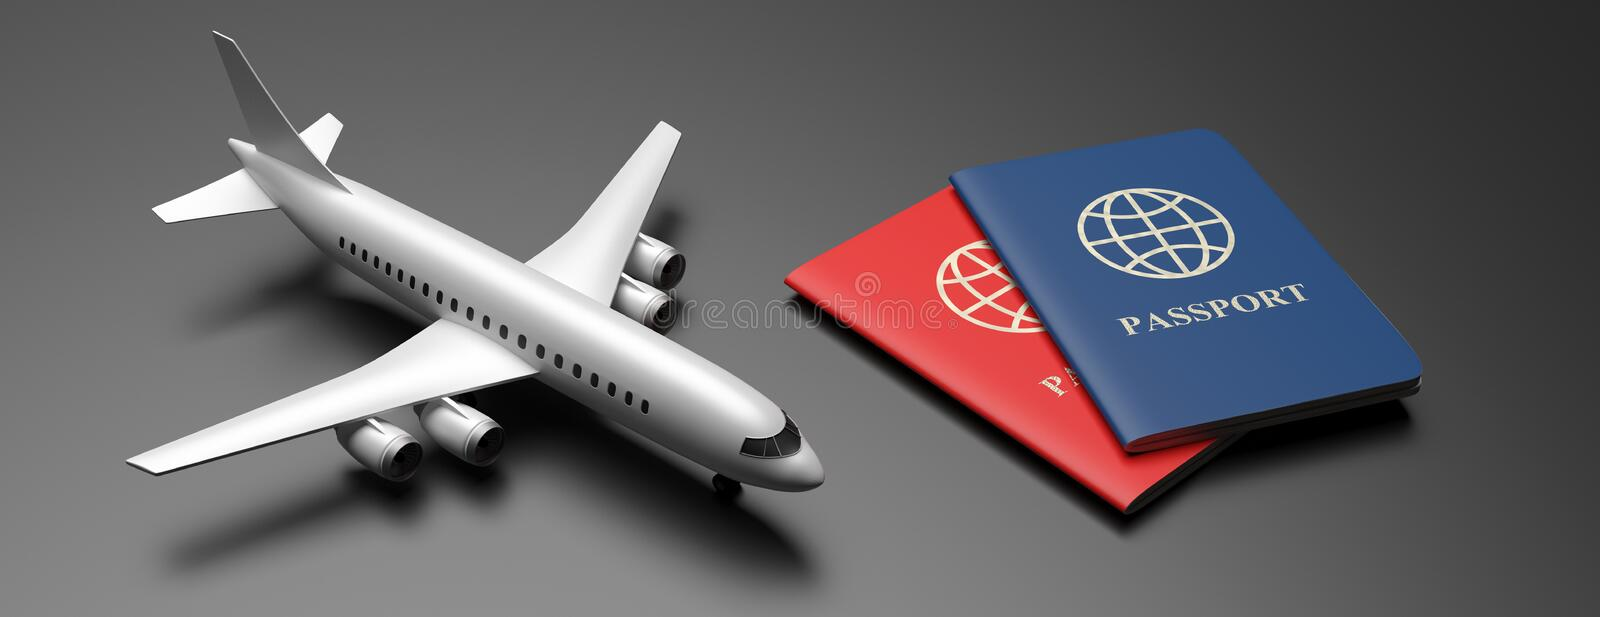 Blue and red passports on black background, banner. 3d illustration. Flight and travel documents for business trip, immigration, tourism. Airplane model and two vector illustration